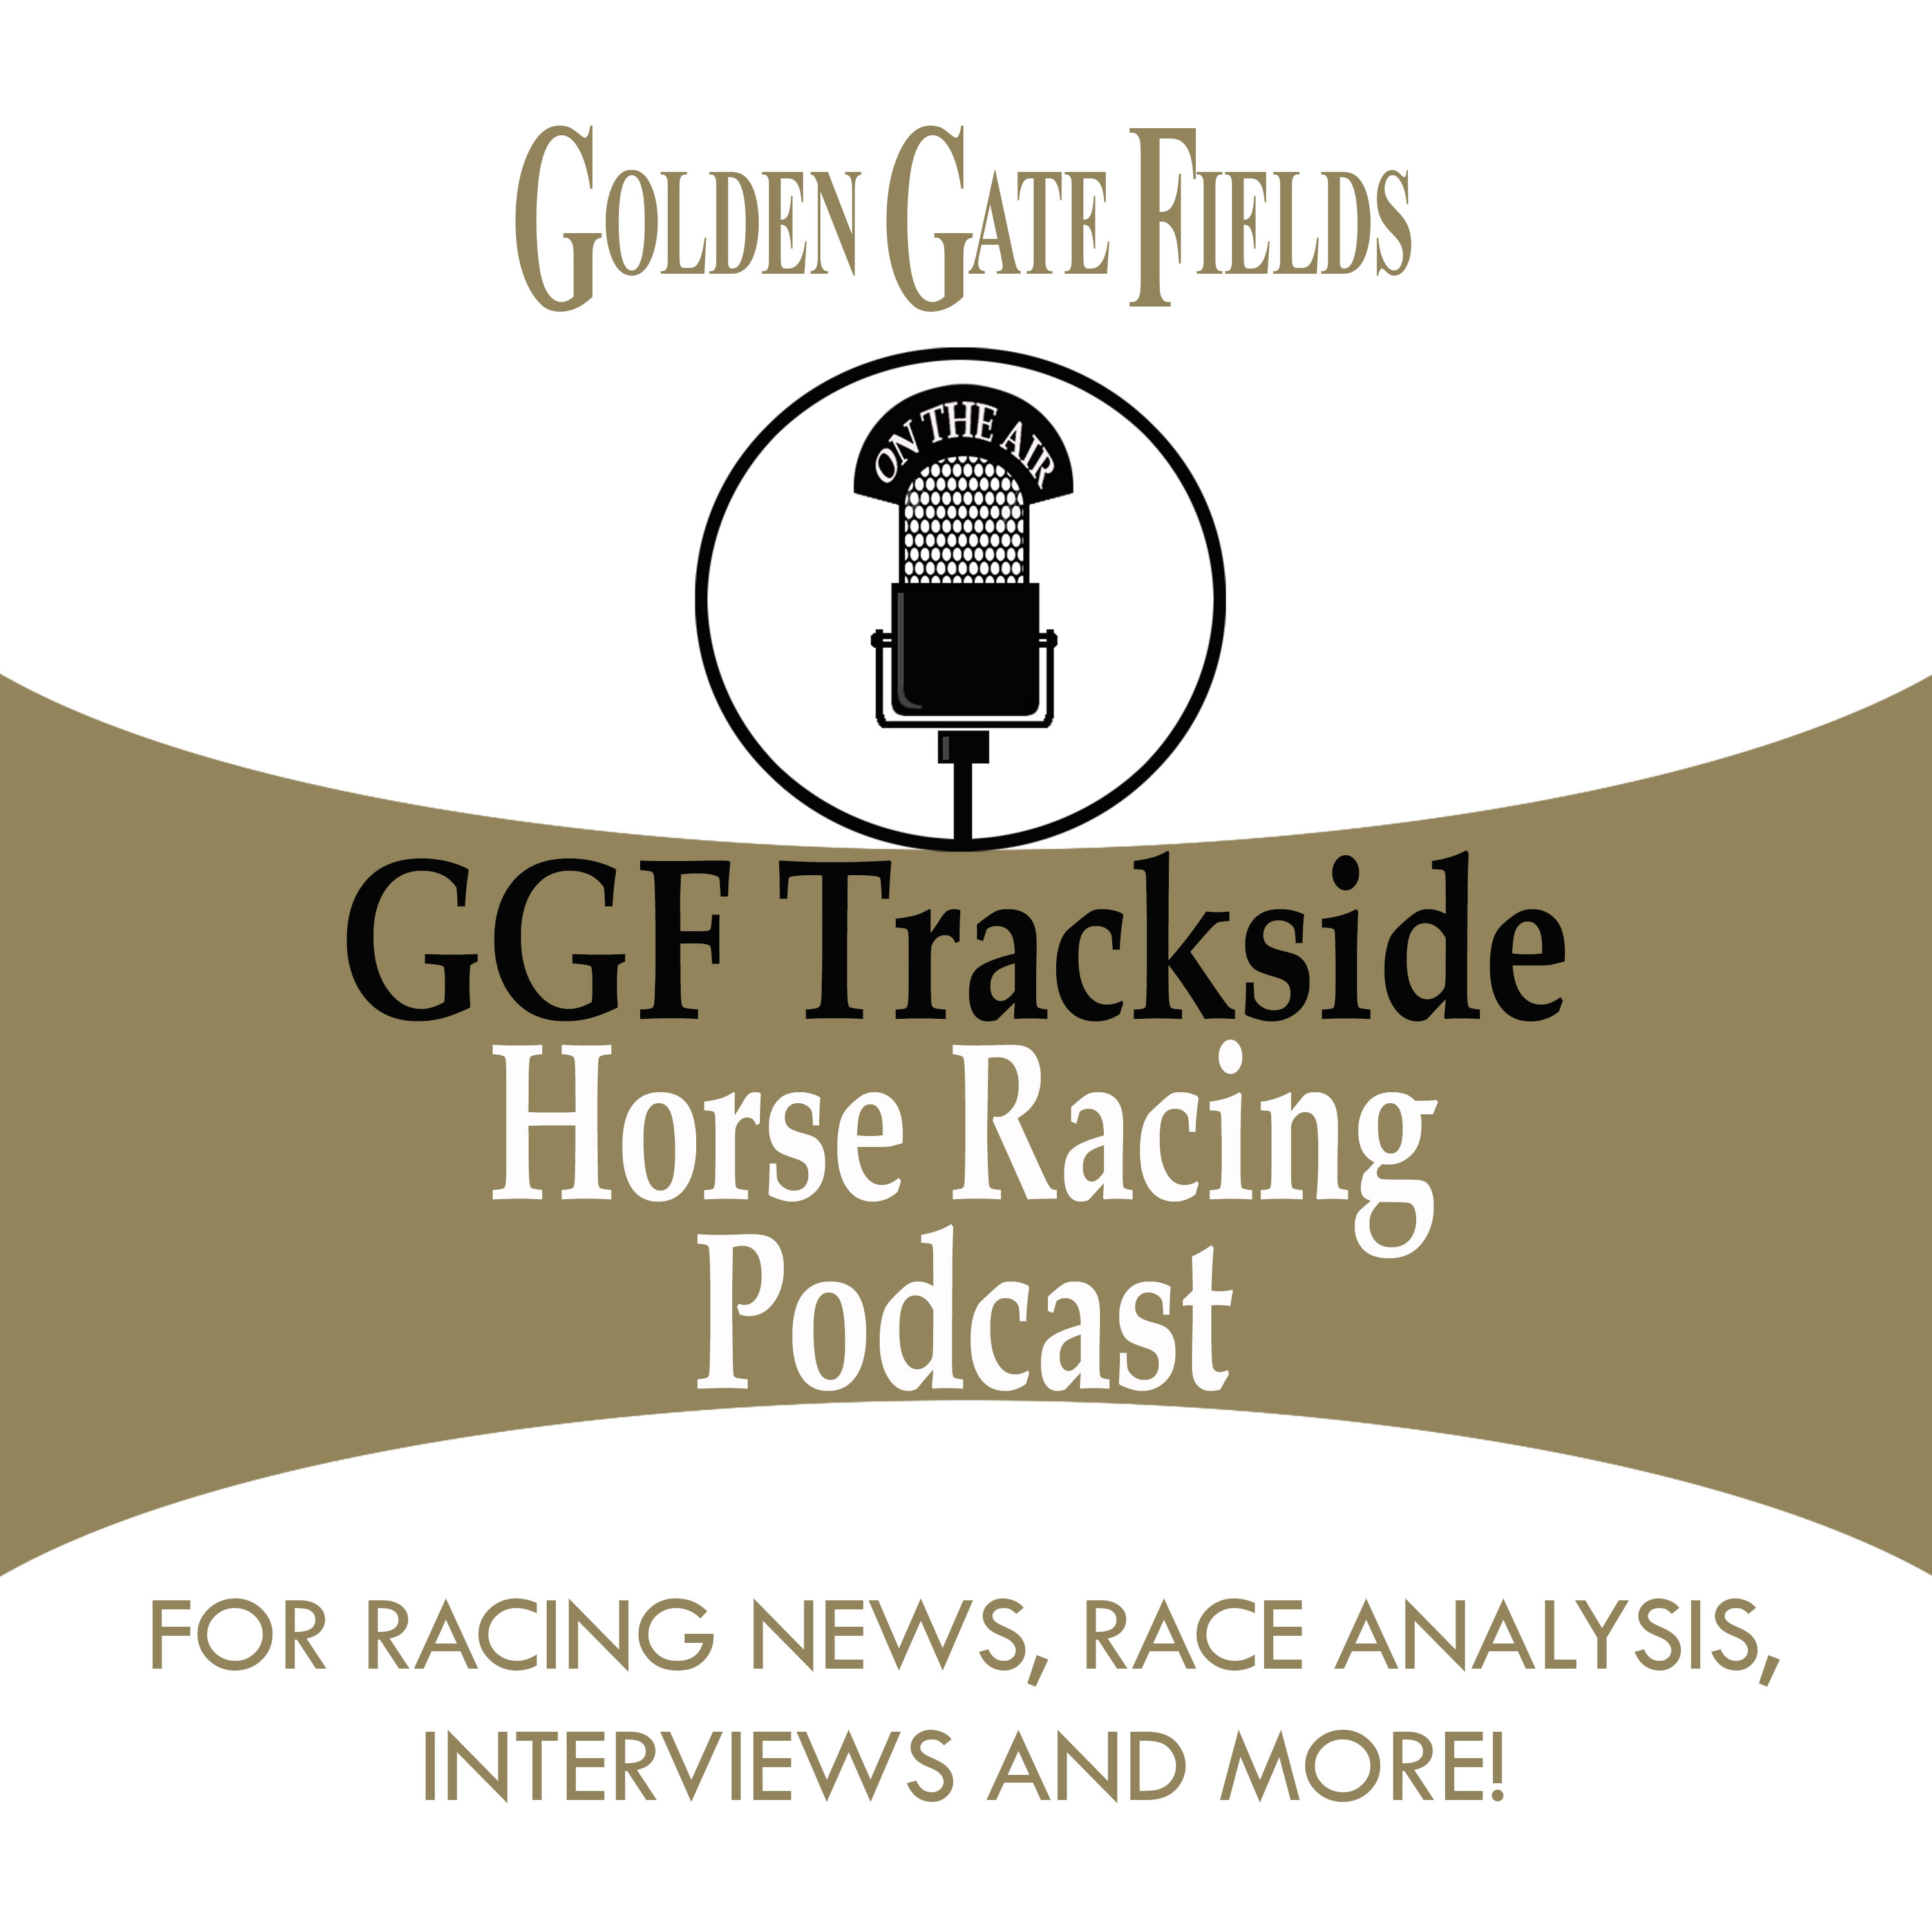 GOLDEN GATE FIELDS' PODCAST logo